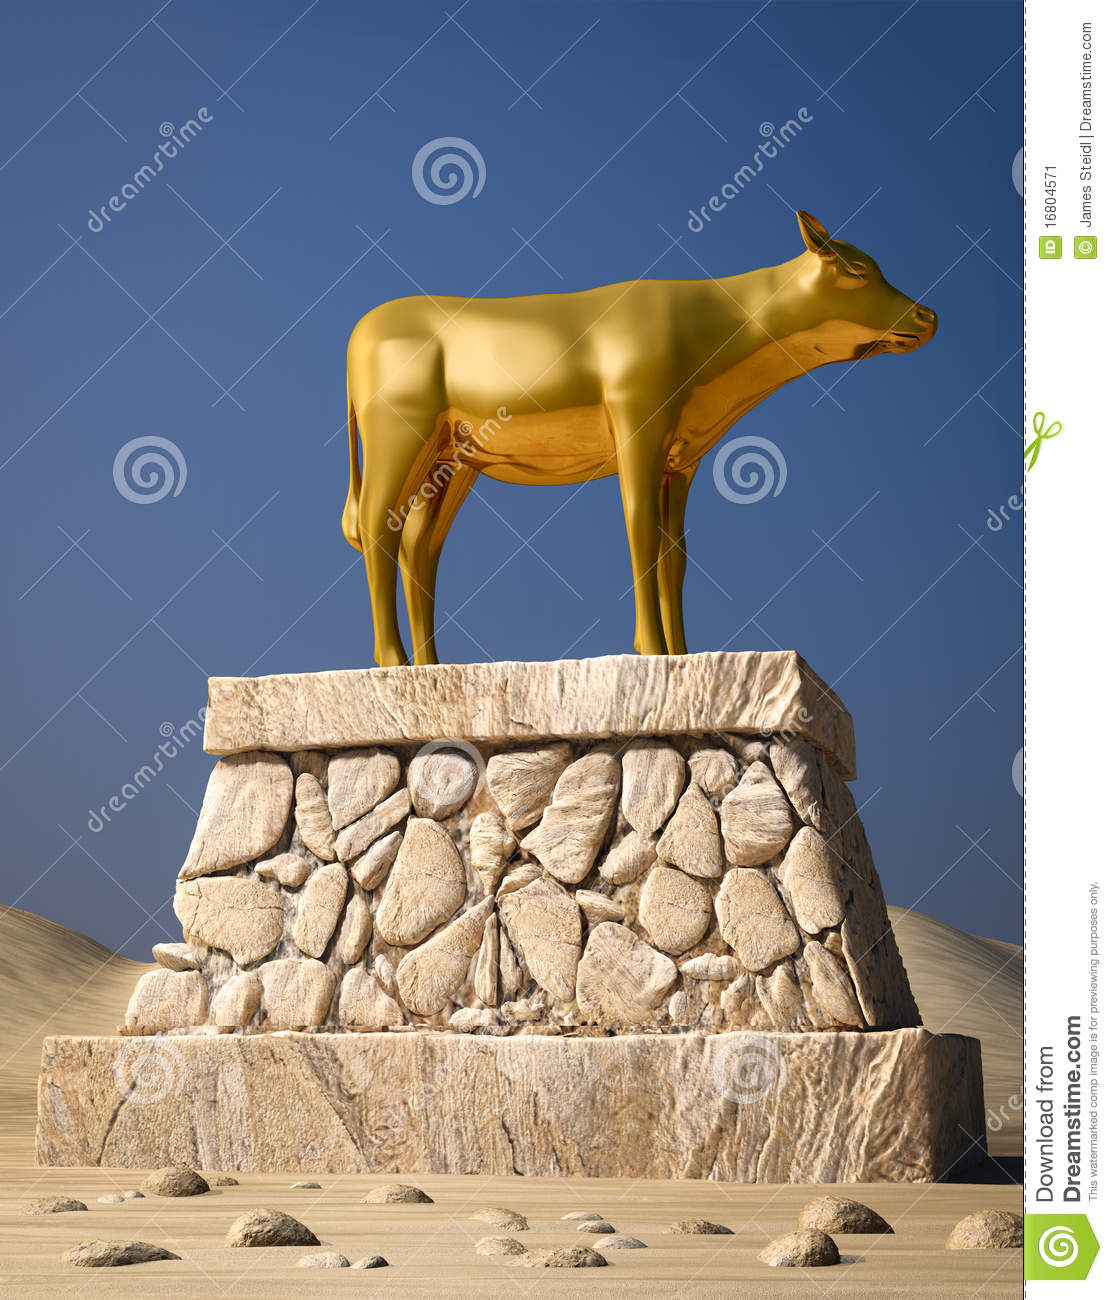 Golden Calf Stock Image   Image  16804571